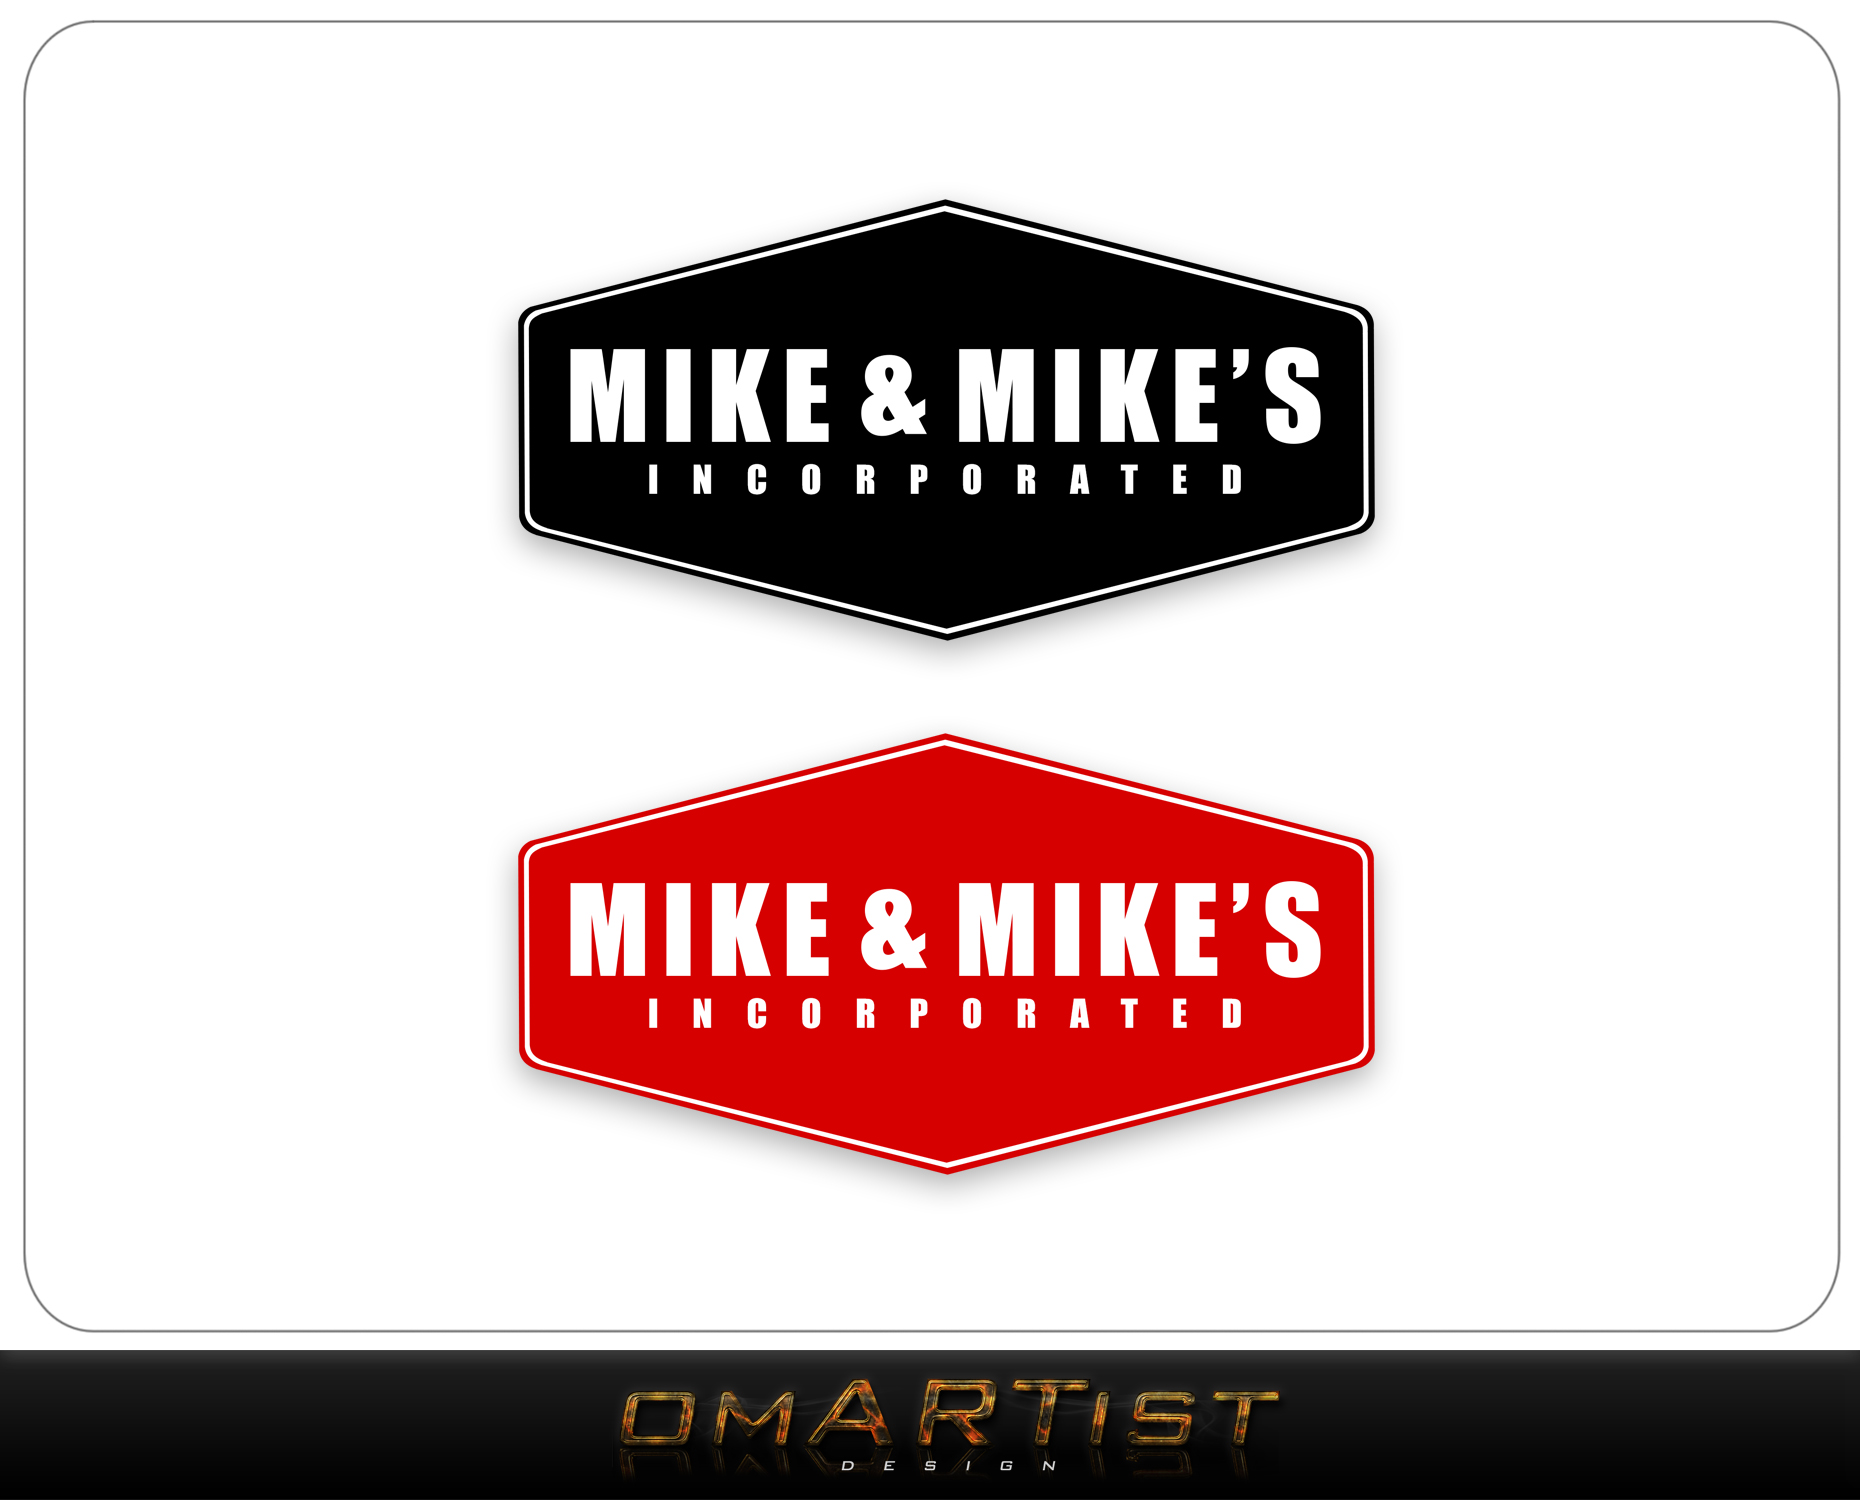 Logo Design by omARTist - Entry No. 46 in the Logo Design Contest Captivating Logo Design for Mike and Mike's Inc..